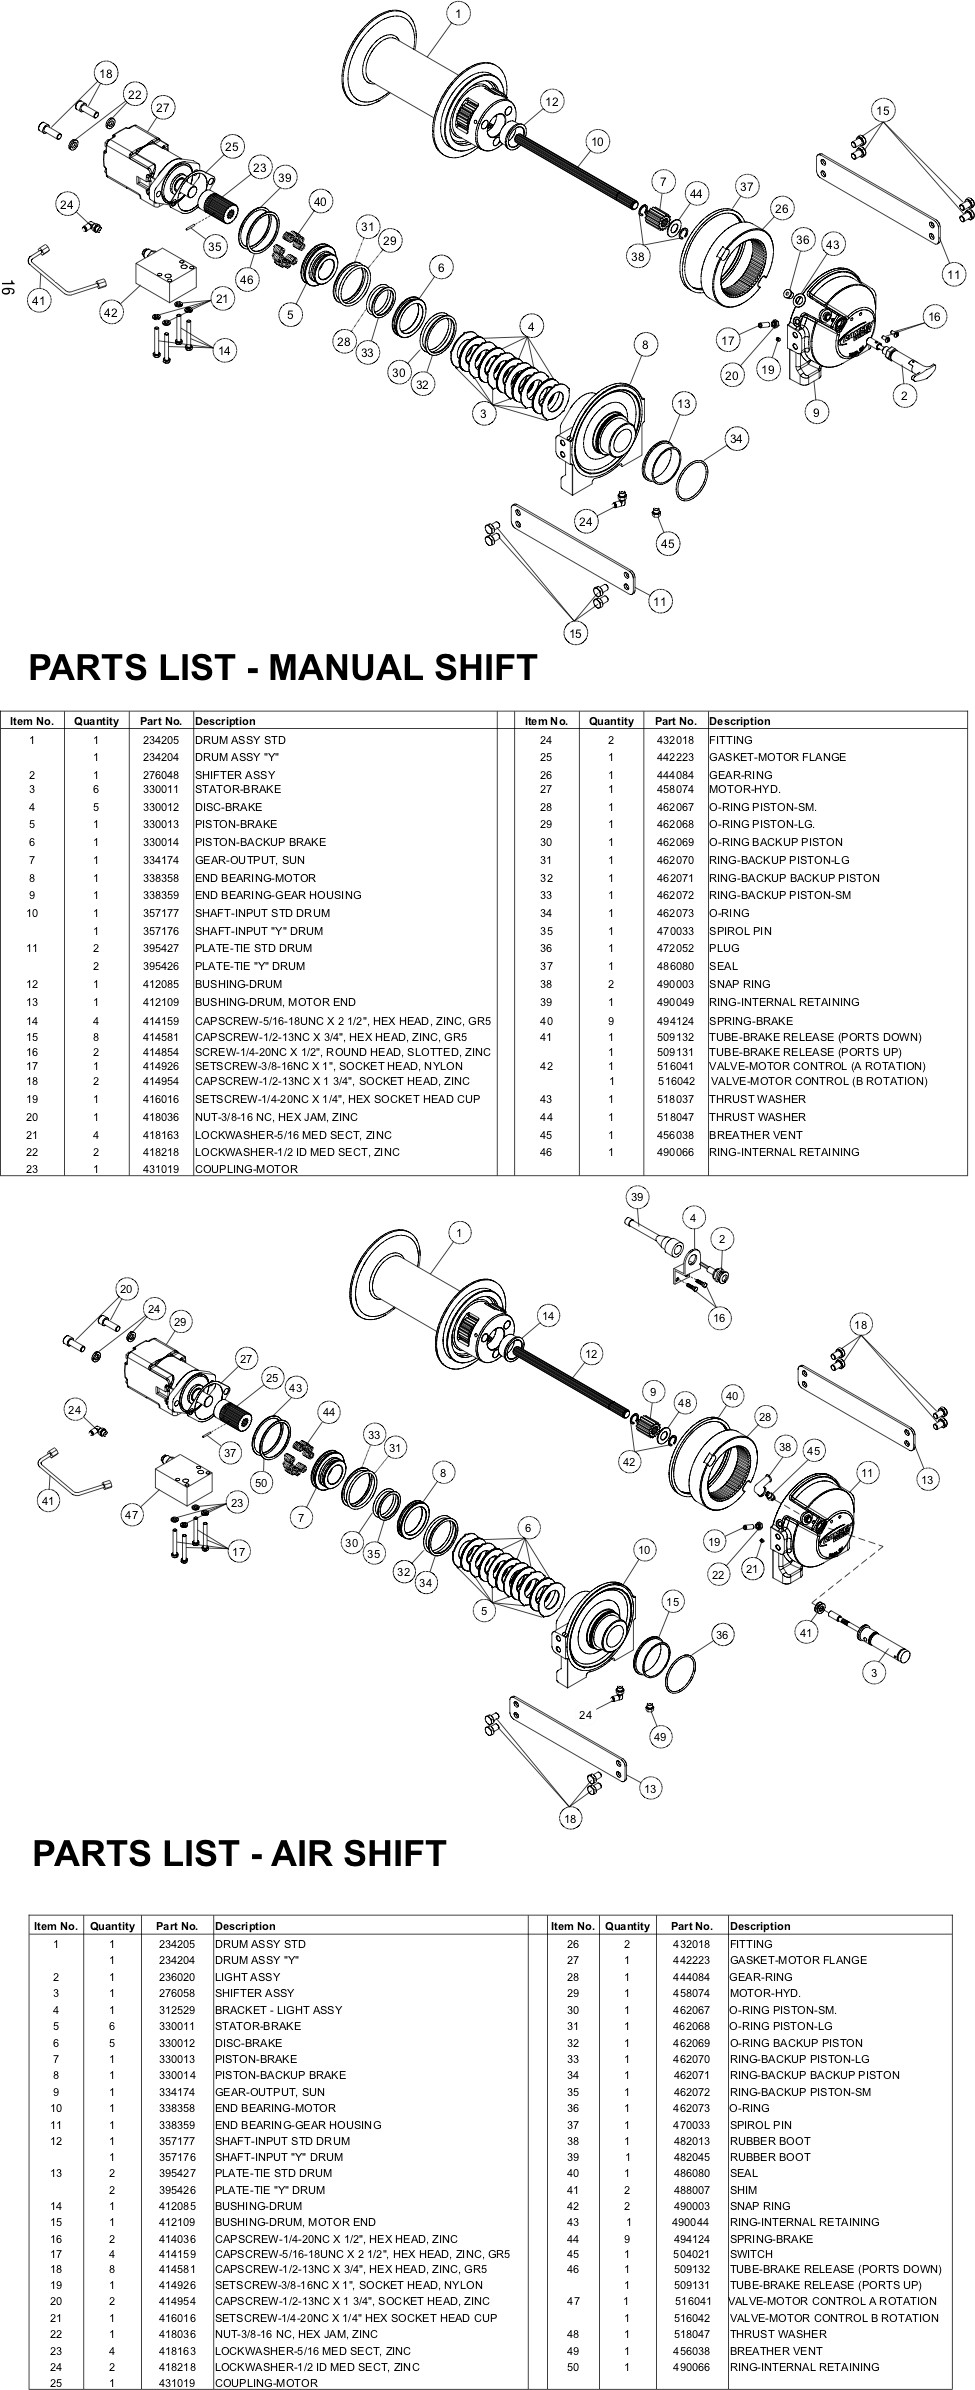 Ramsey Winch HDP 8,000 Parts Diagram